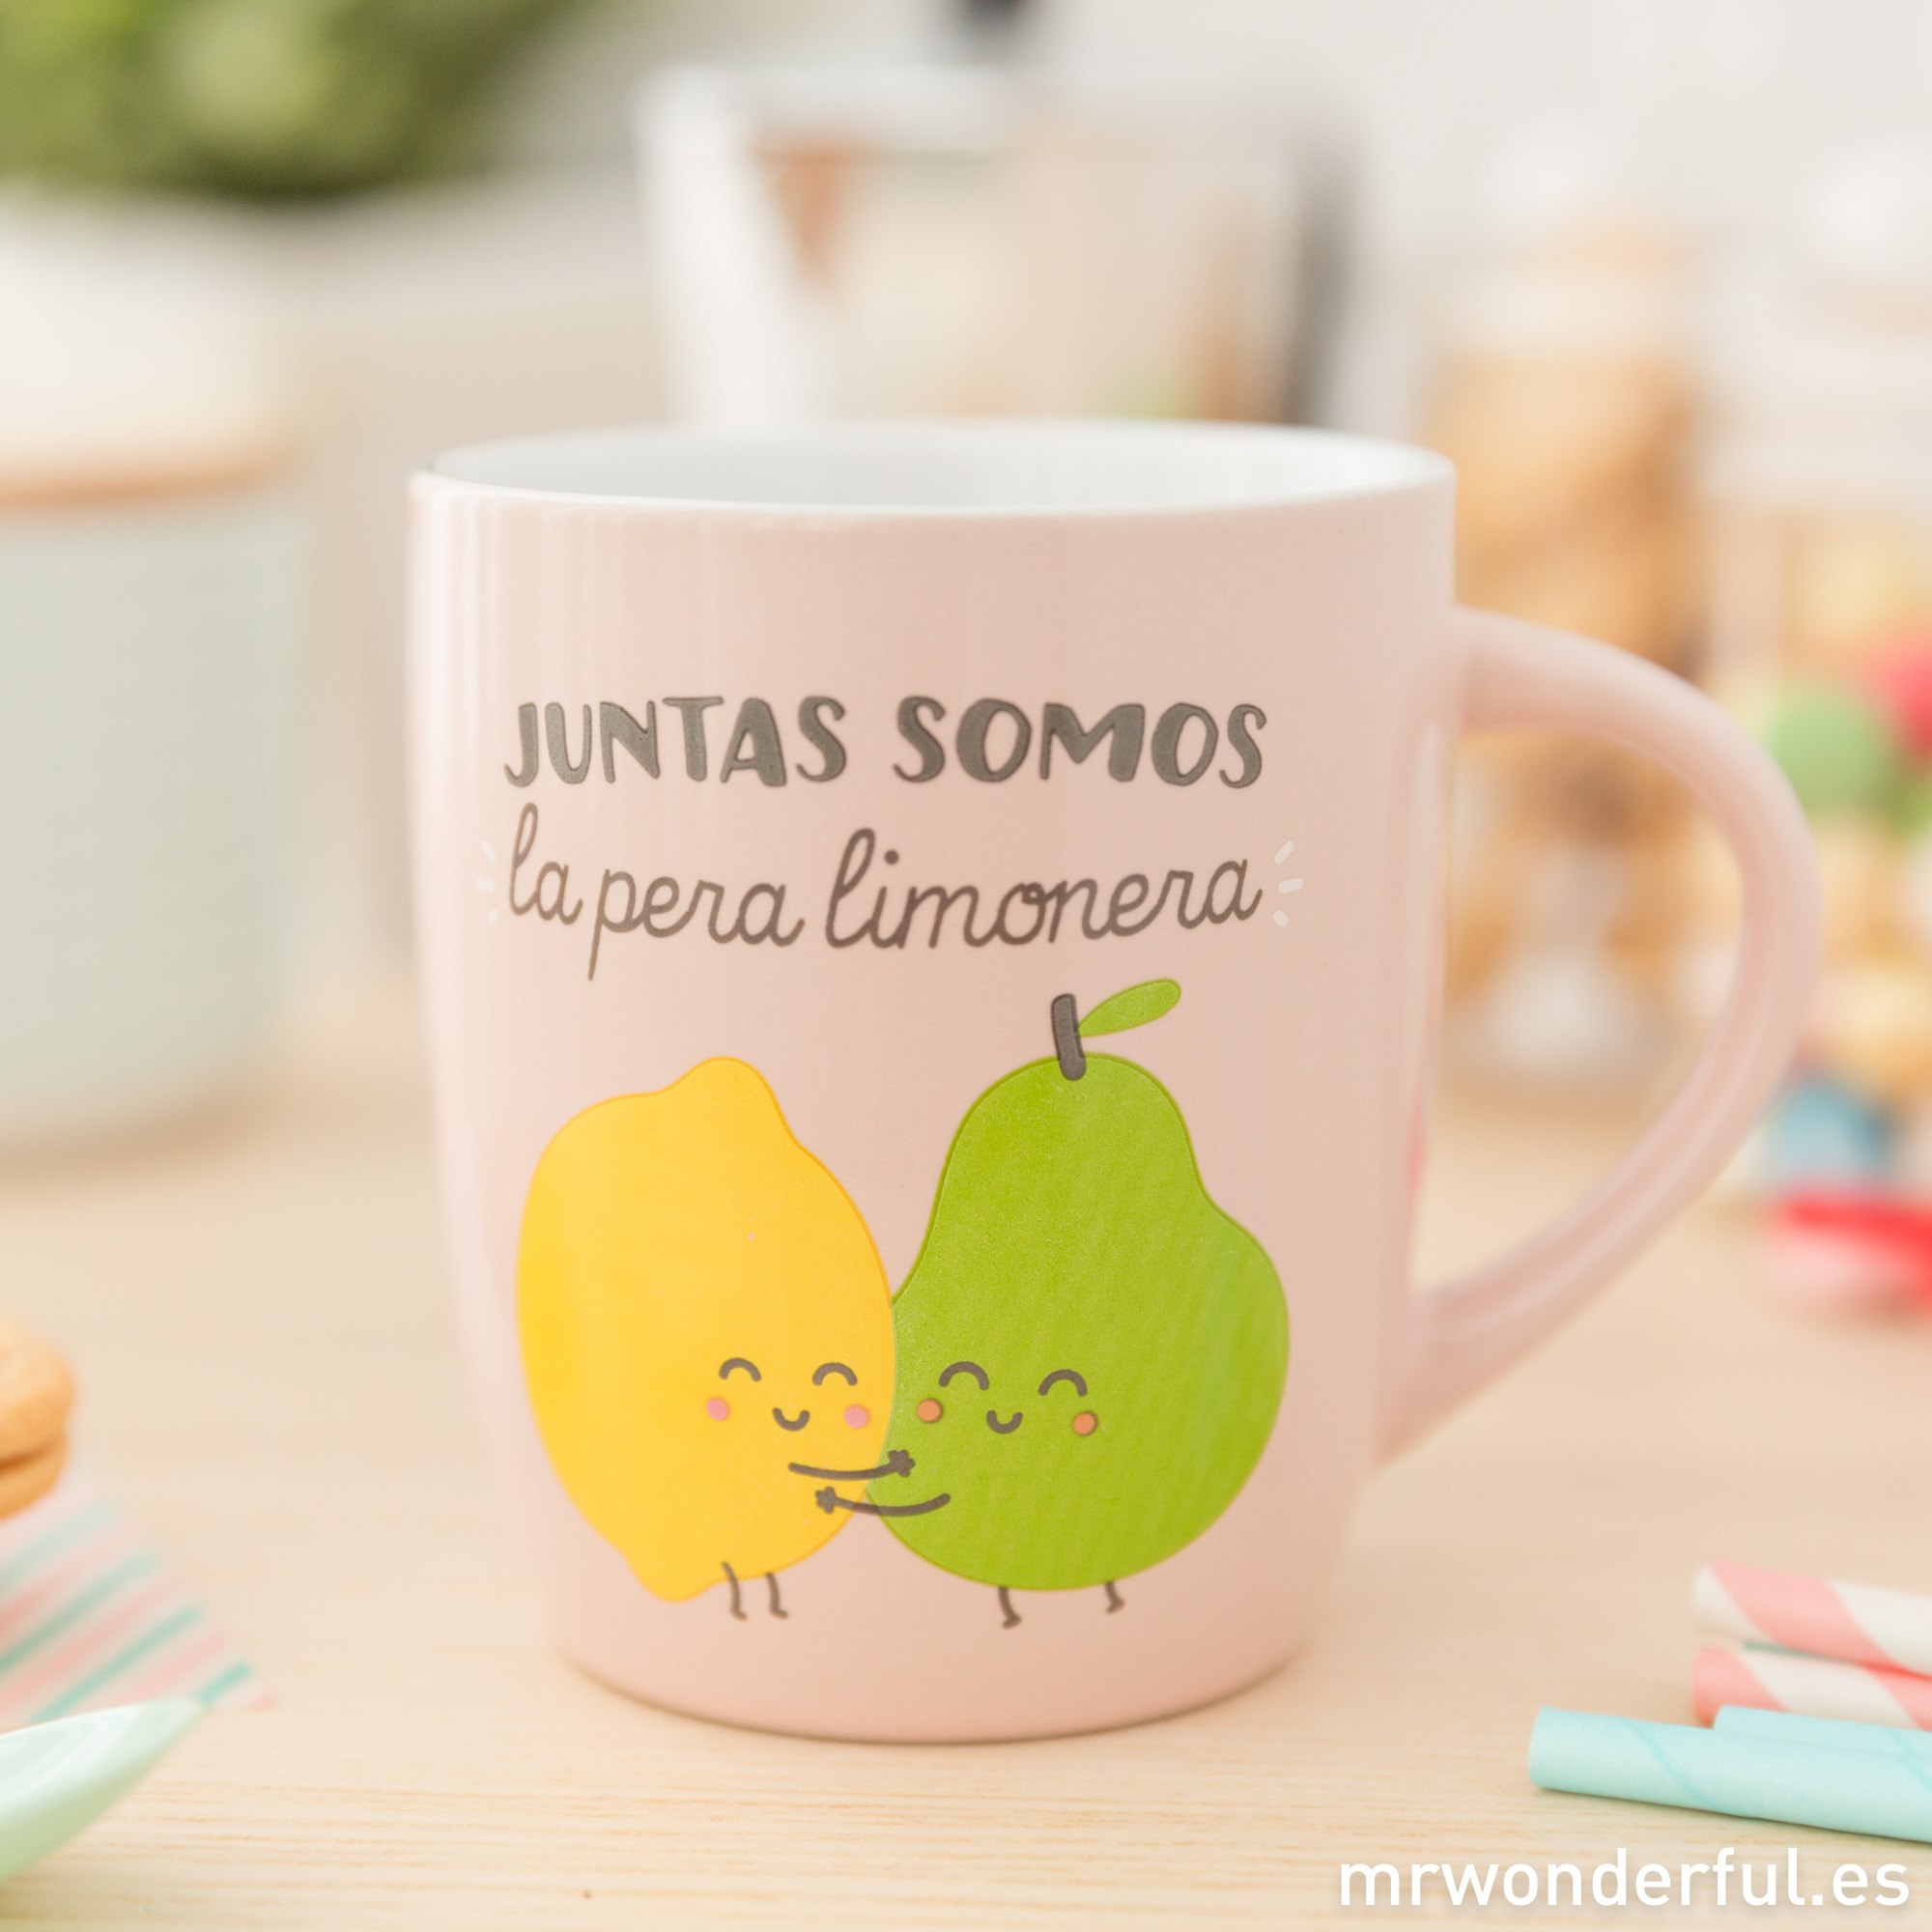 Mr wonderful shop muymolon for Decoracion tazas mr wonderful